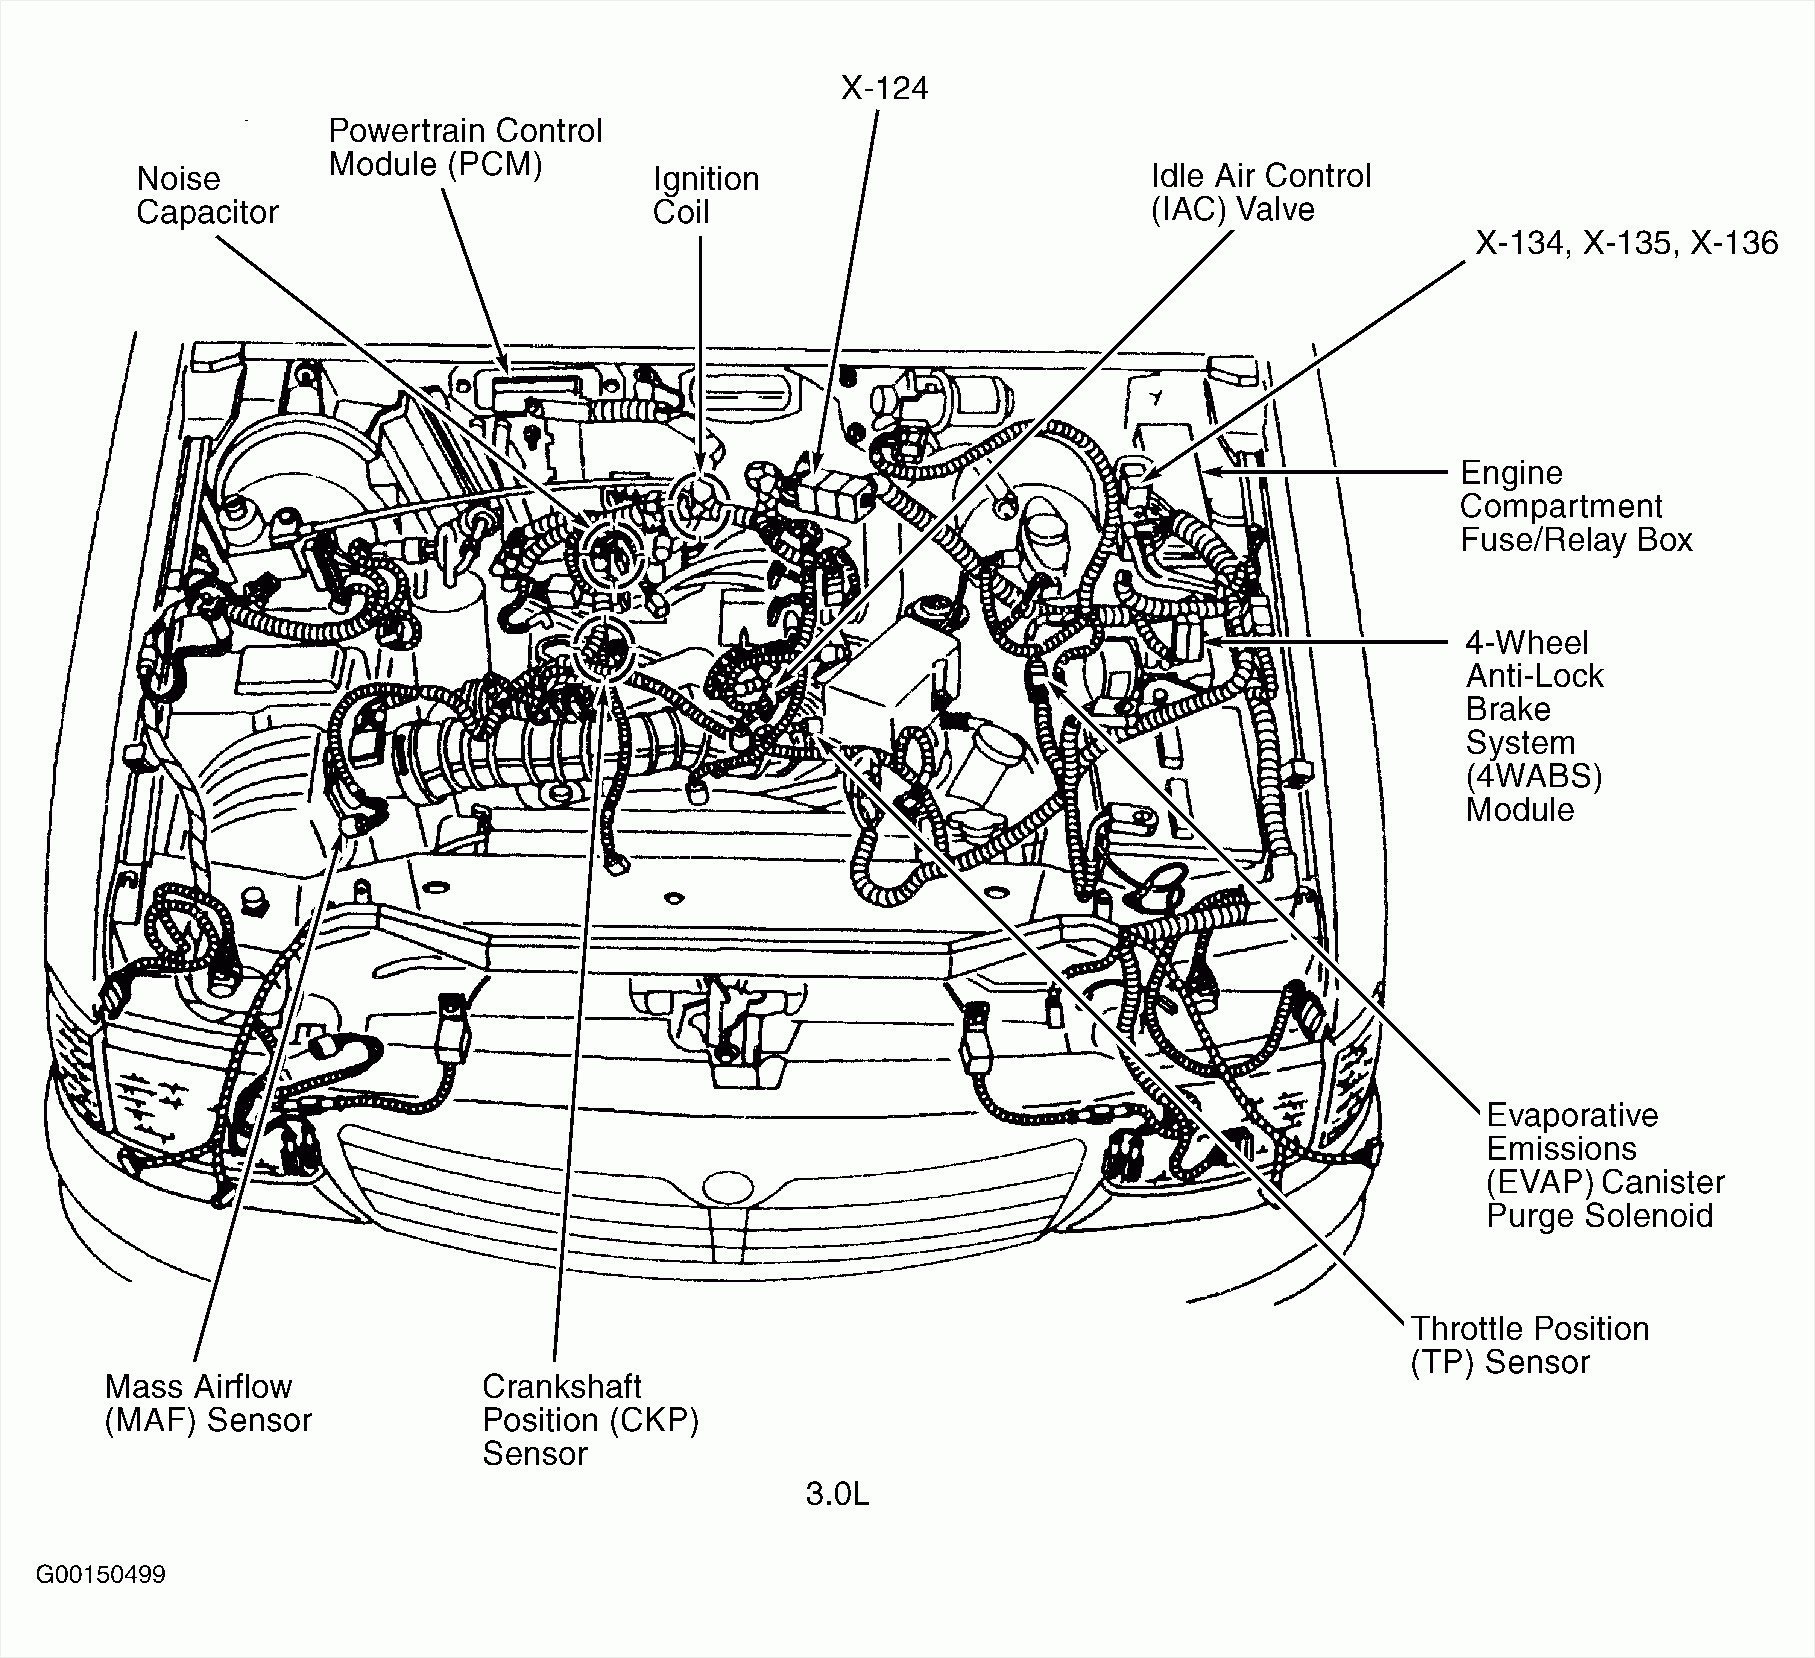 1999 Mazda Miata Engine Diagram 2008 Mazda 3 Engine Diagram Wiring Diagrams • Of 1999 Mazda Miata Engine Diagram